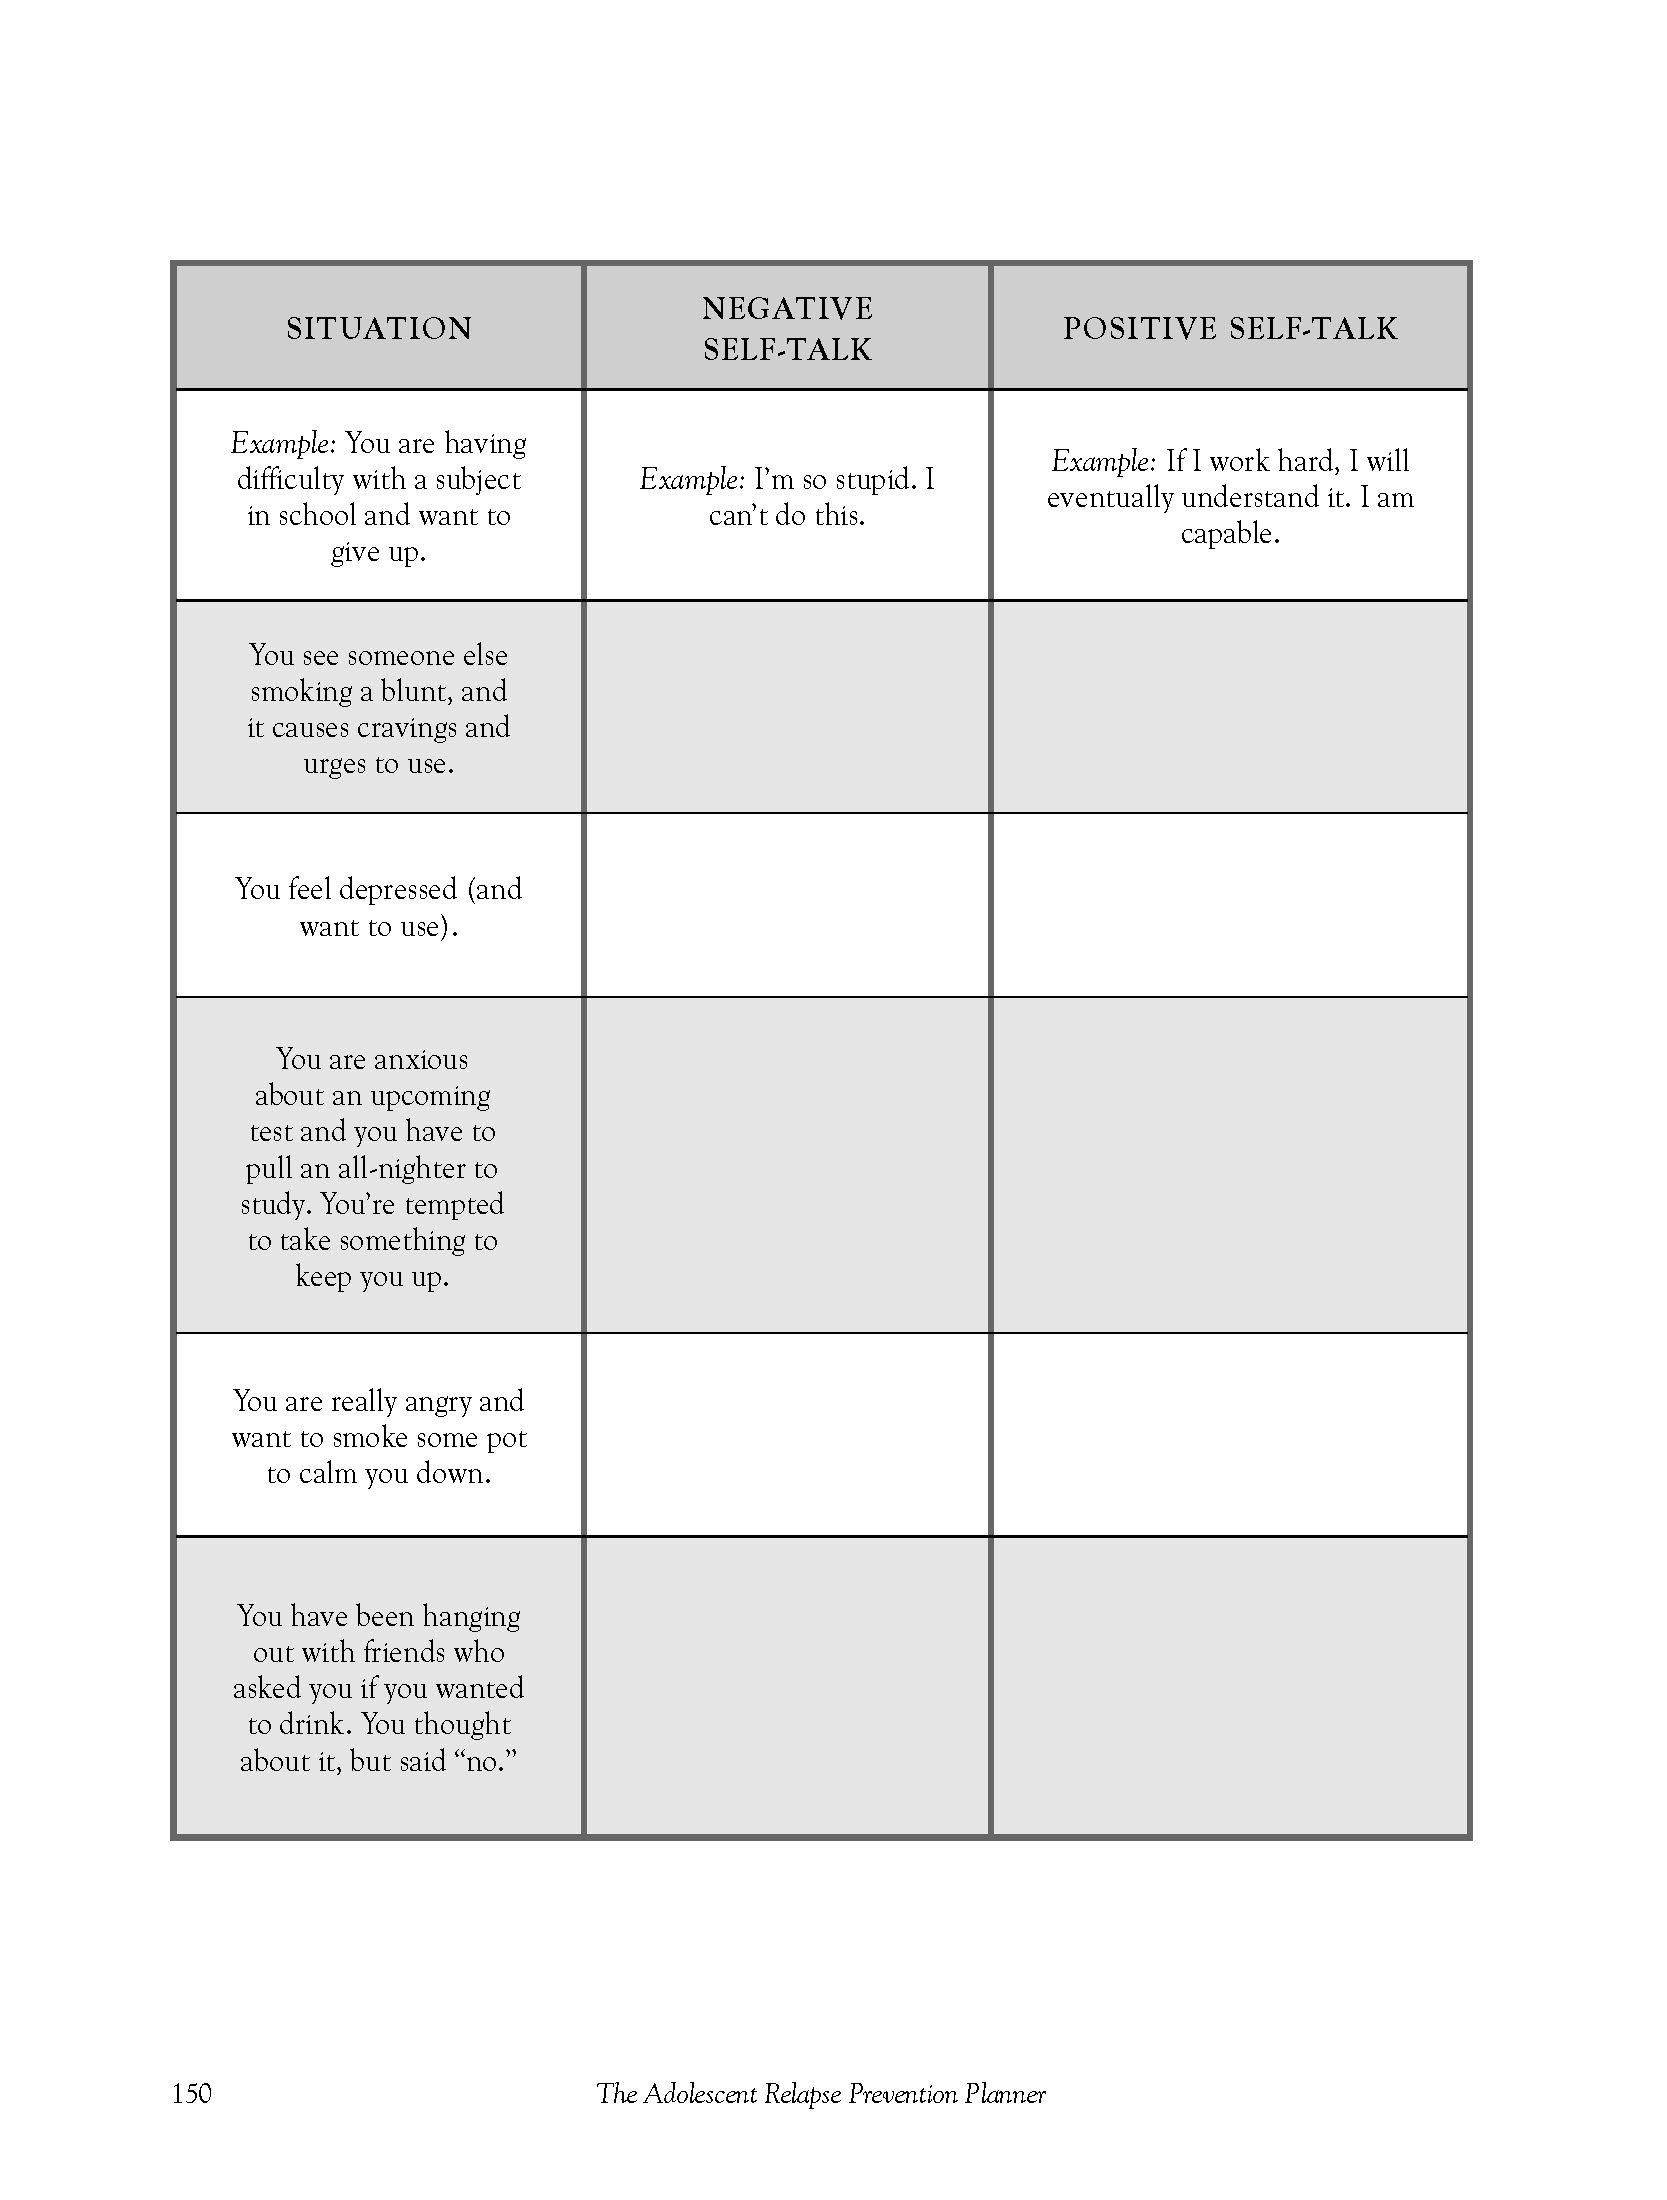 worksheet Worksheets For Group Therapy a multi use exercise worksheet on self talking taken from the adolescent